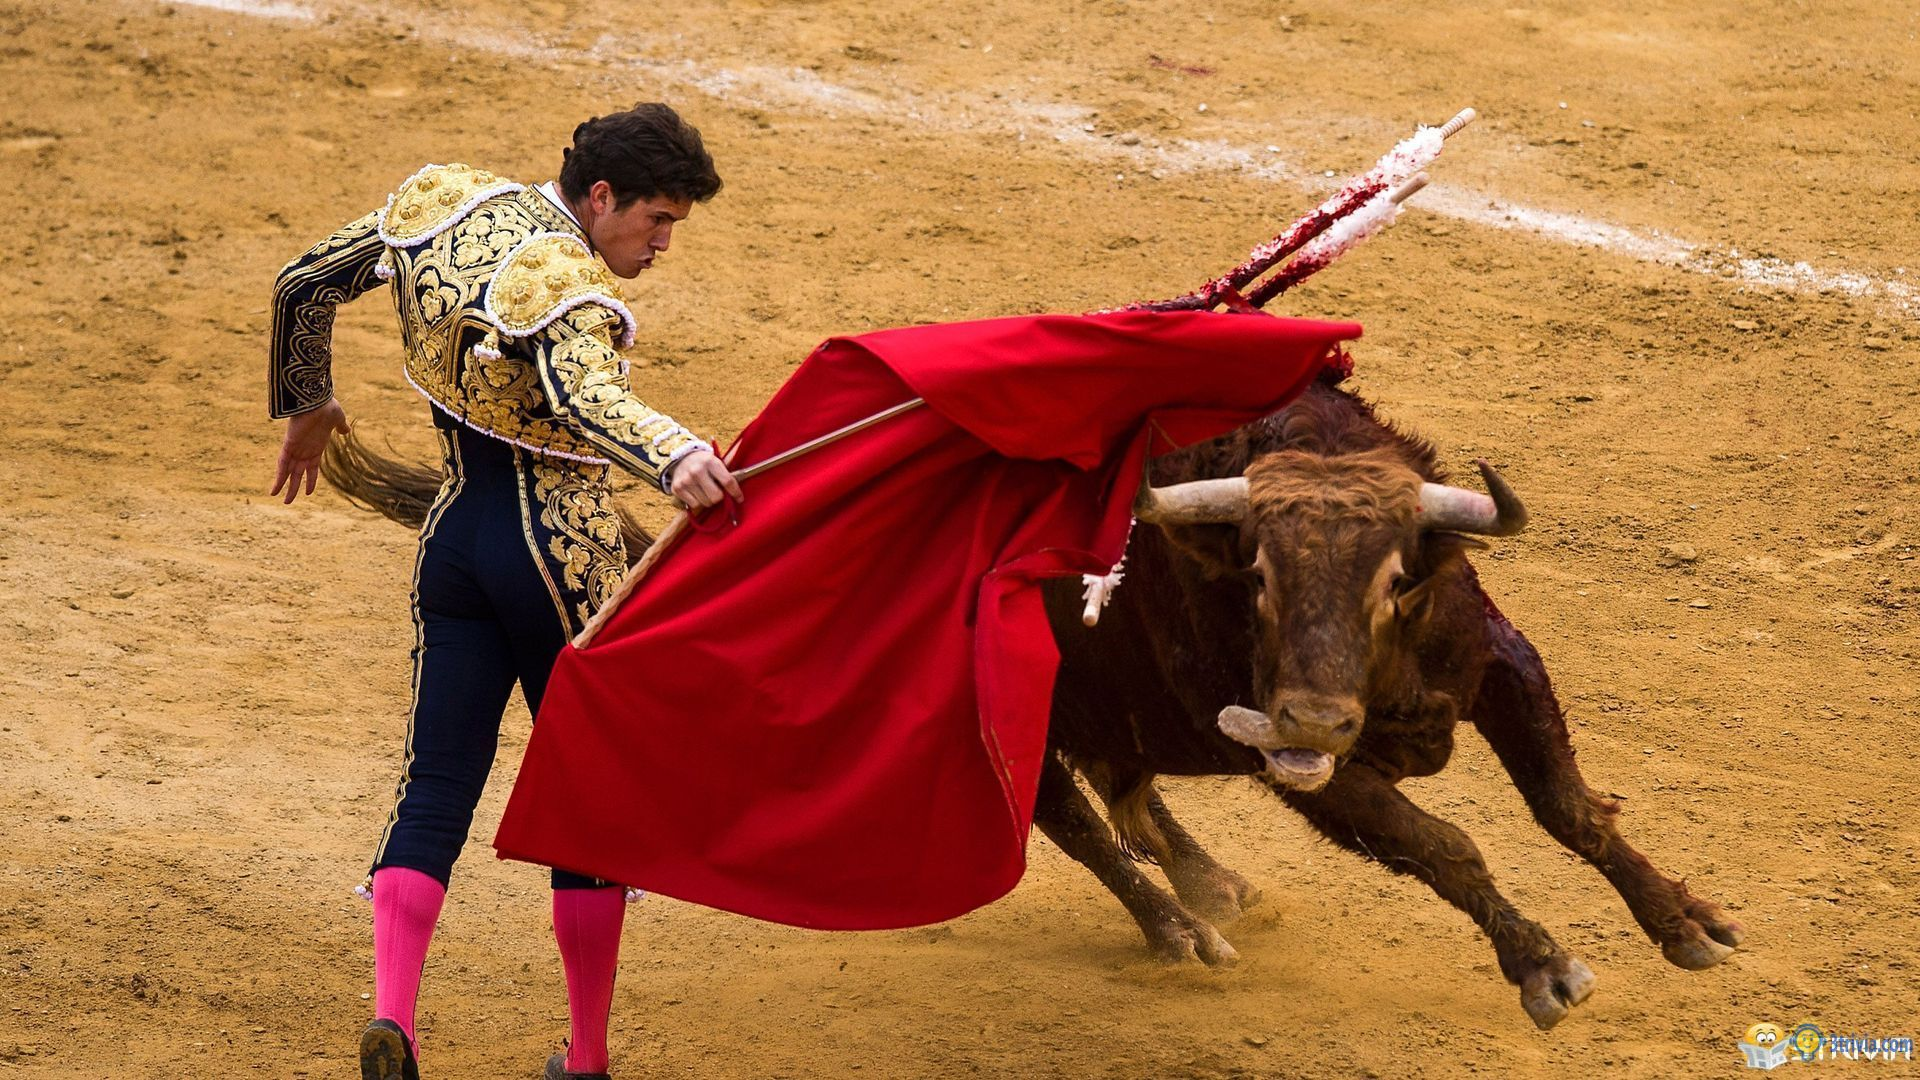 Bullfighting Trivia:Why use red cloth?